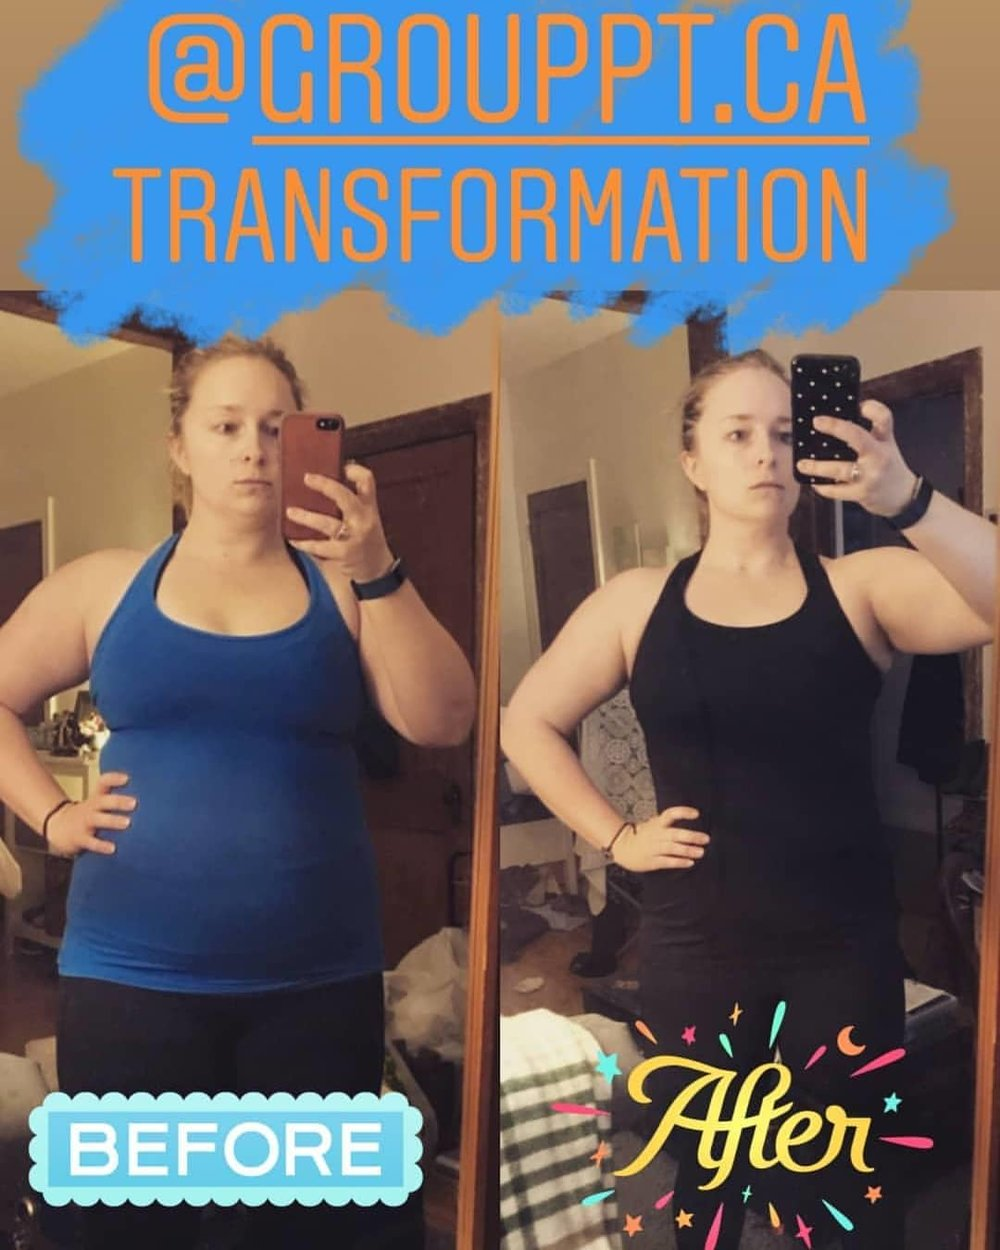 Steph Johns member of group pt transformation